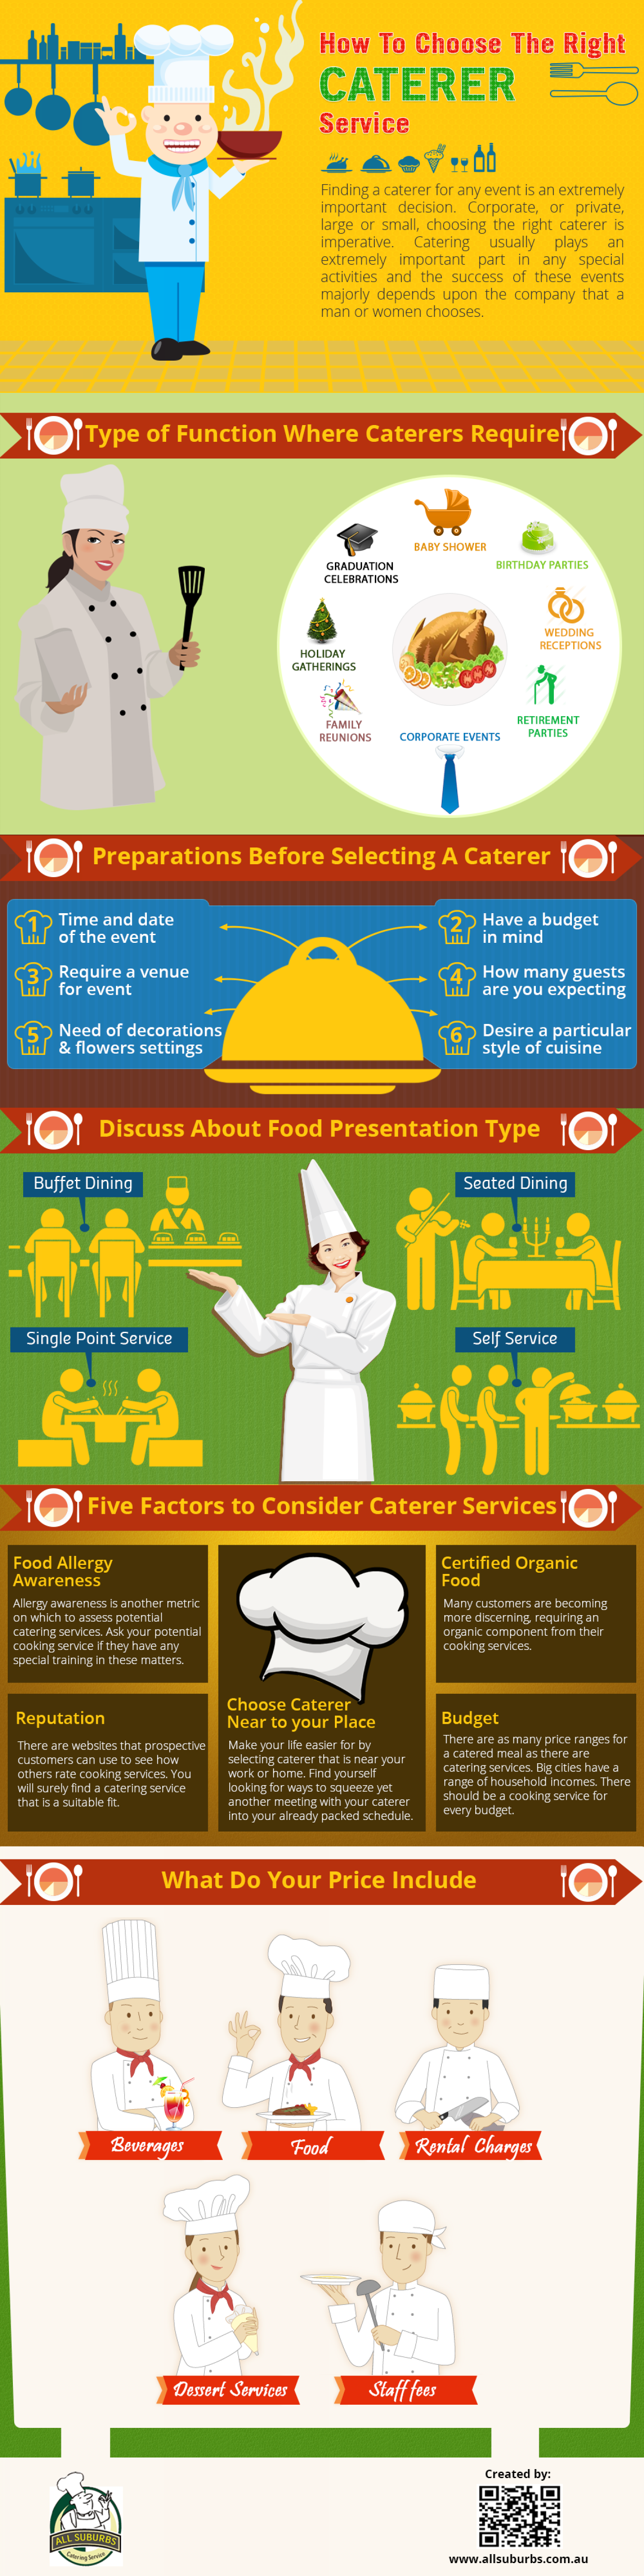 How To Choose The Right Caterer Service Infographic